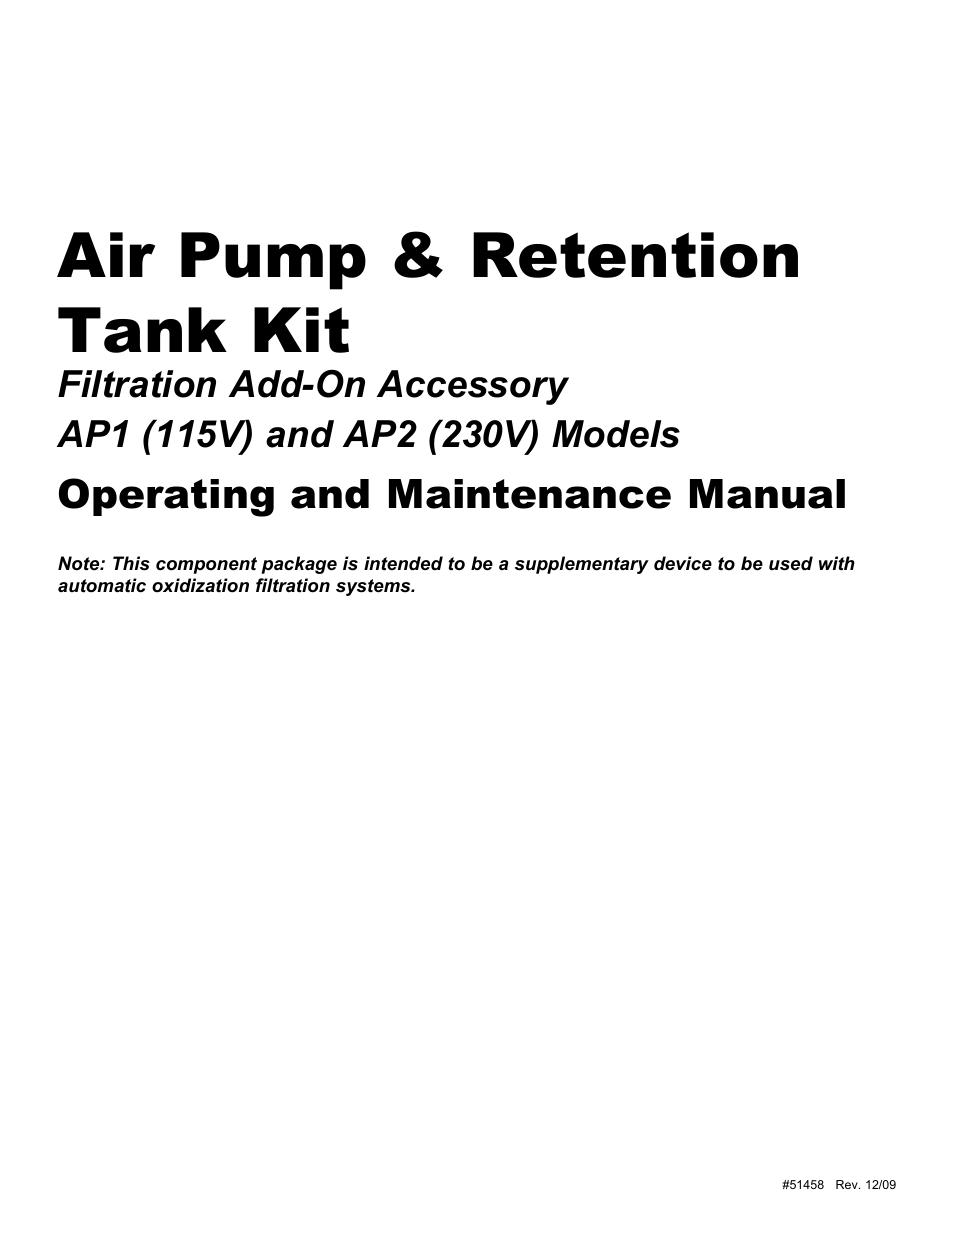 Hydrotech AP1 (115V) Air Pump & Retention Tank Kit User